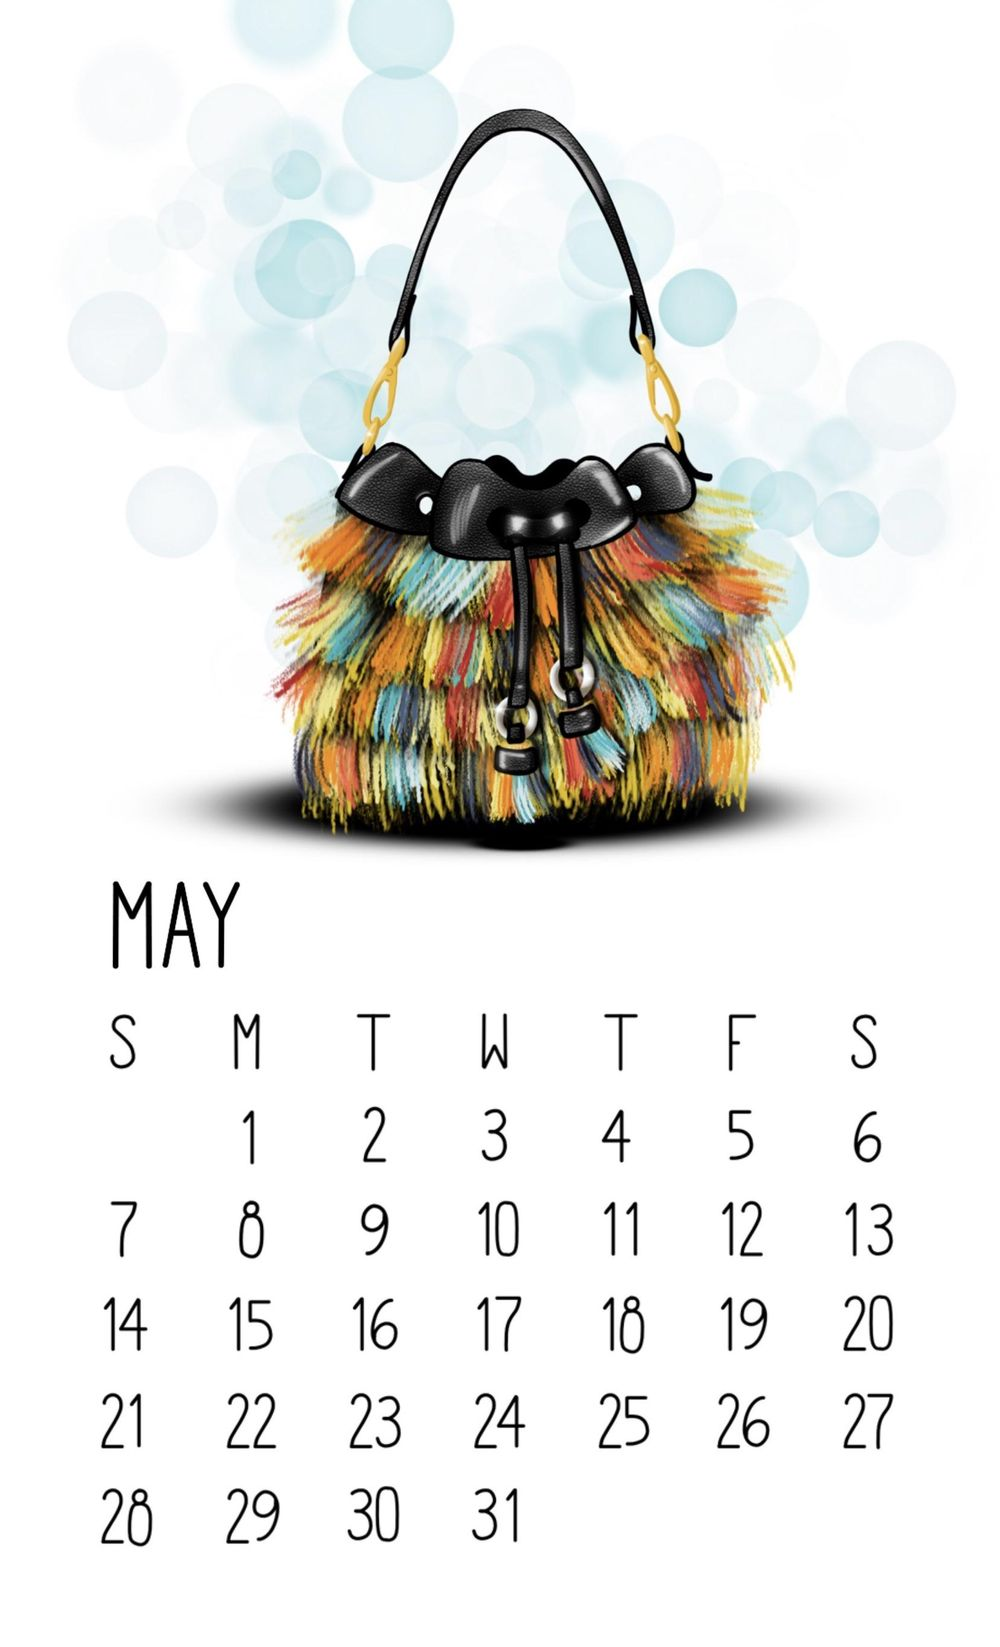 May Calendar! - image 1 - student project